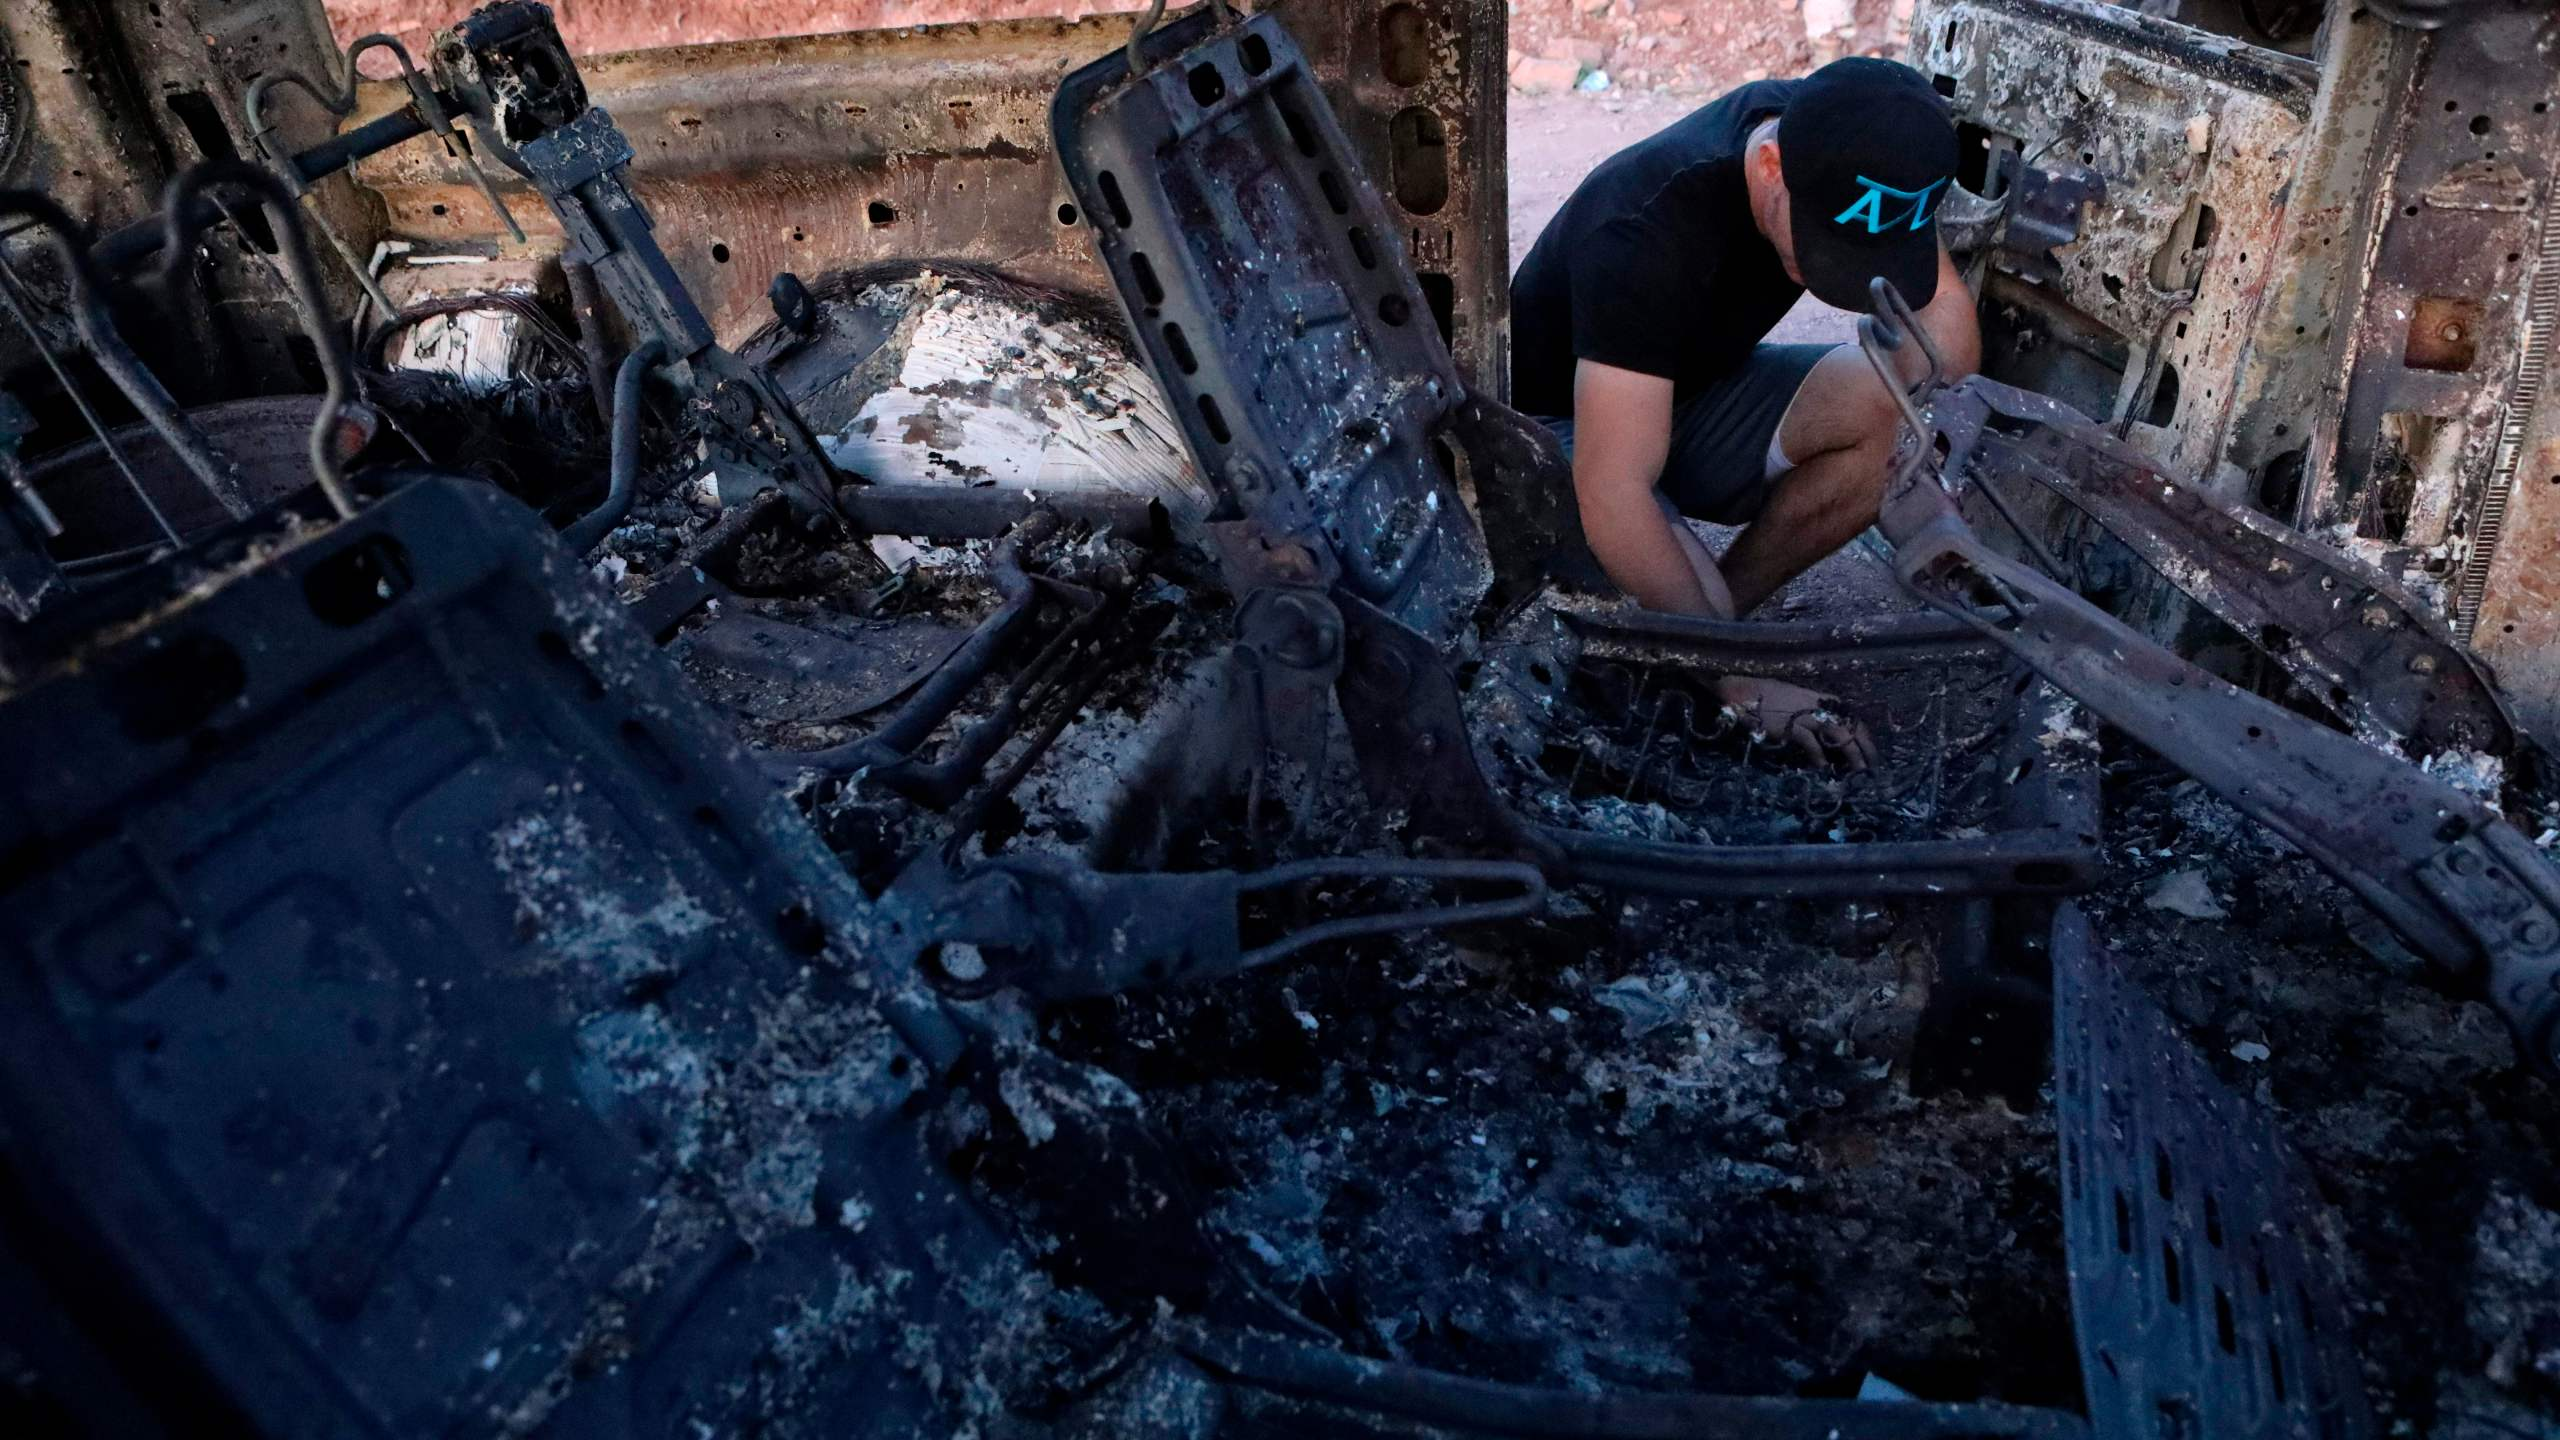 A member of the LeBaron family looks at the burned car where some of nine relatives were killed and burned during an ambush in Bavispe, Sonora mountains, Mexico, on Nov. 5, 2019. (Credit: Herika Martinez / AFP / Getty Images)